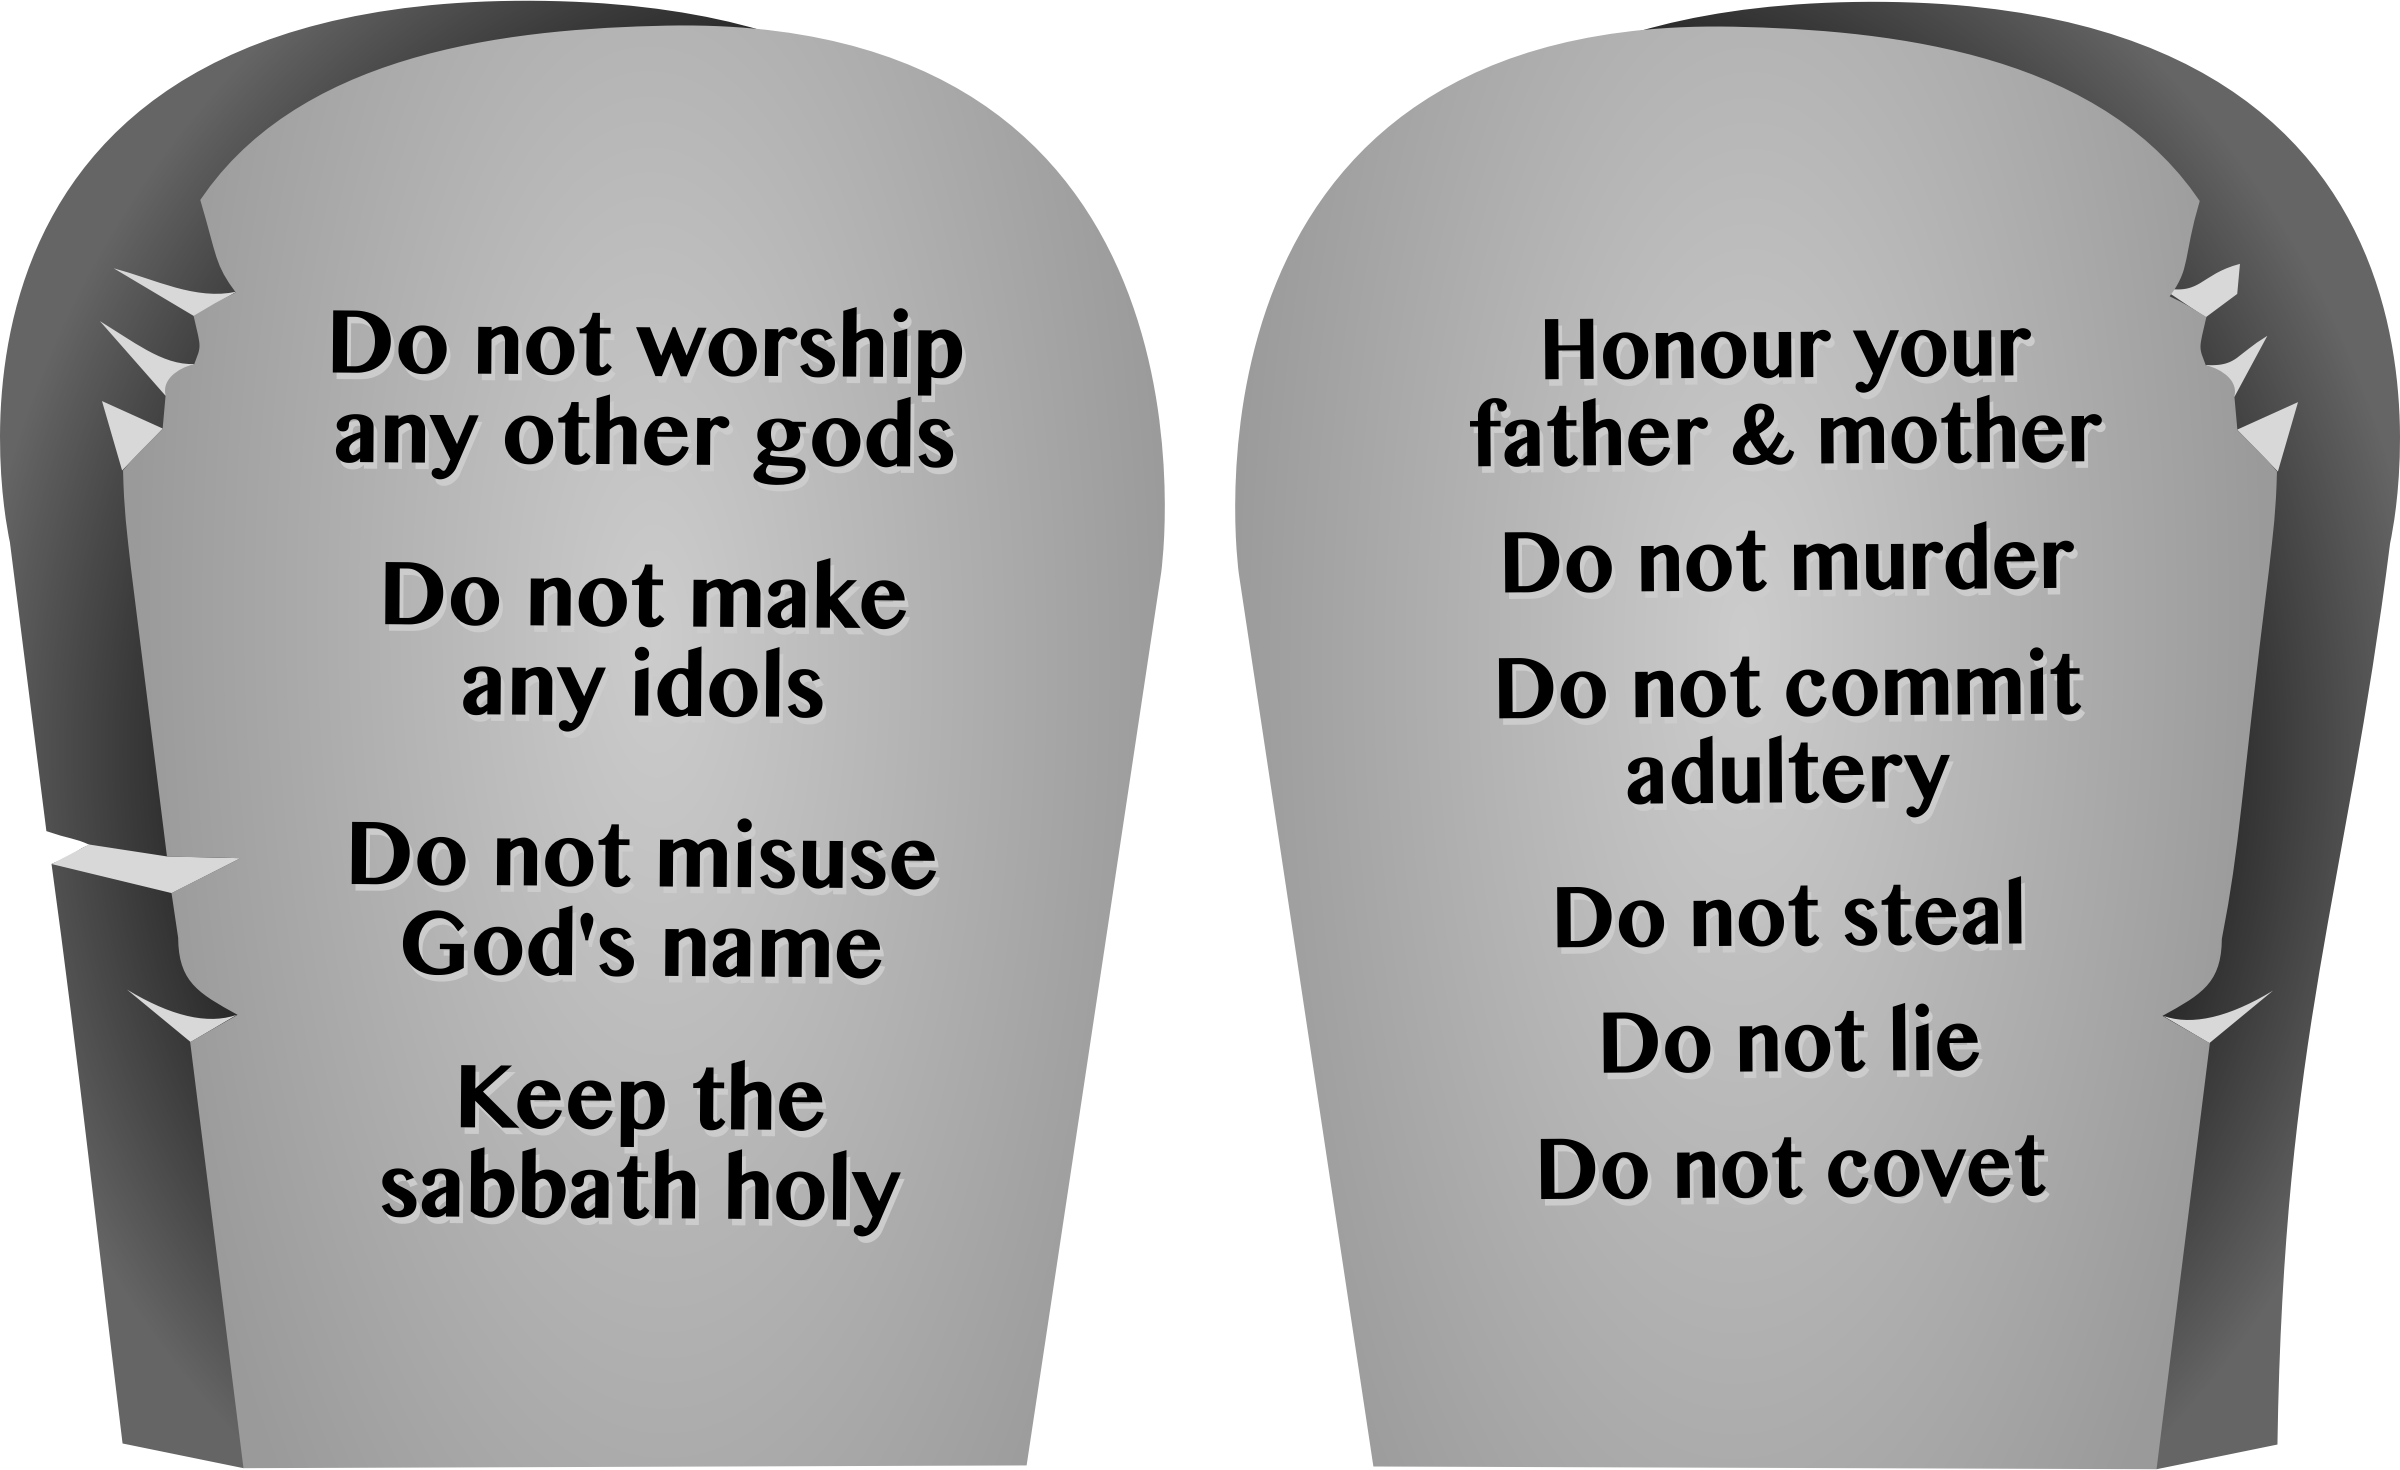 Ten commandments clipart clip art.